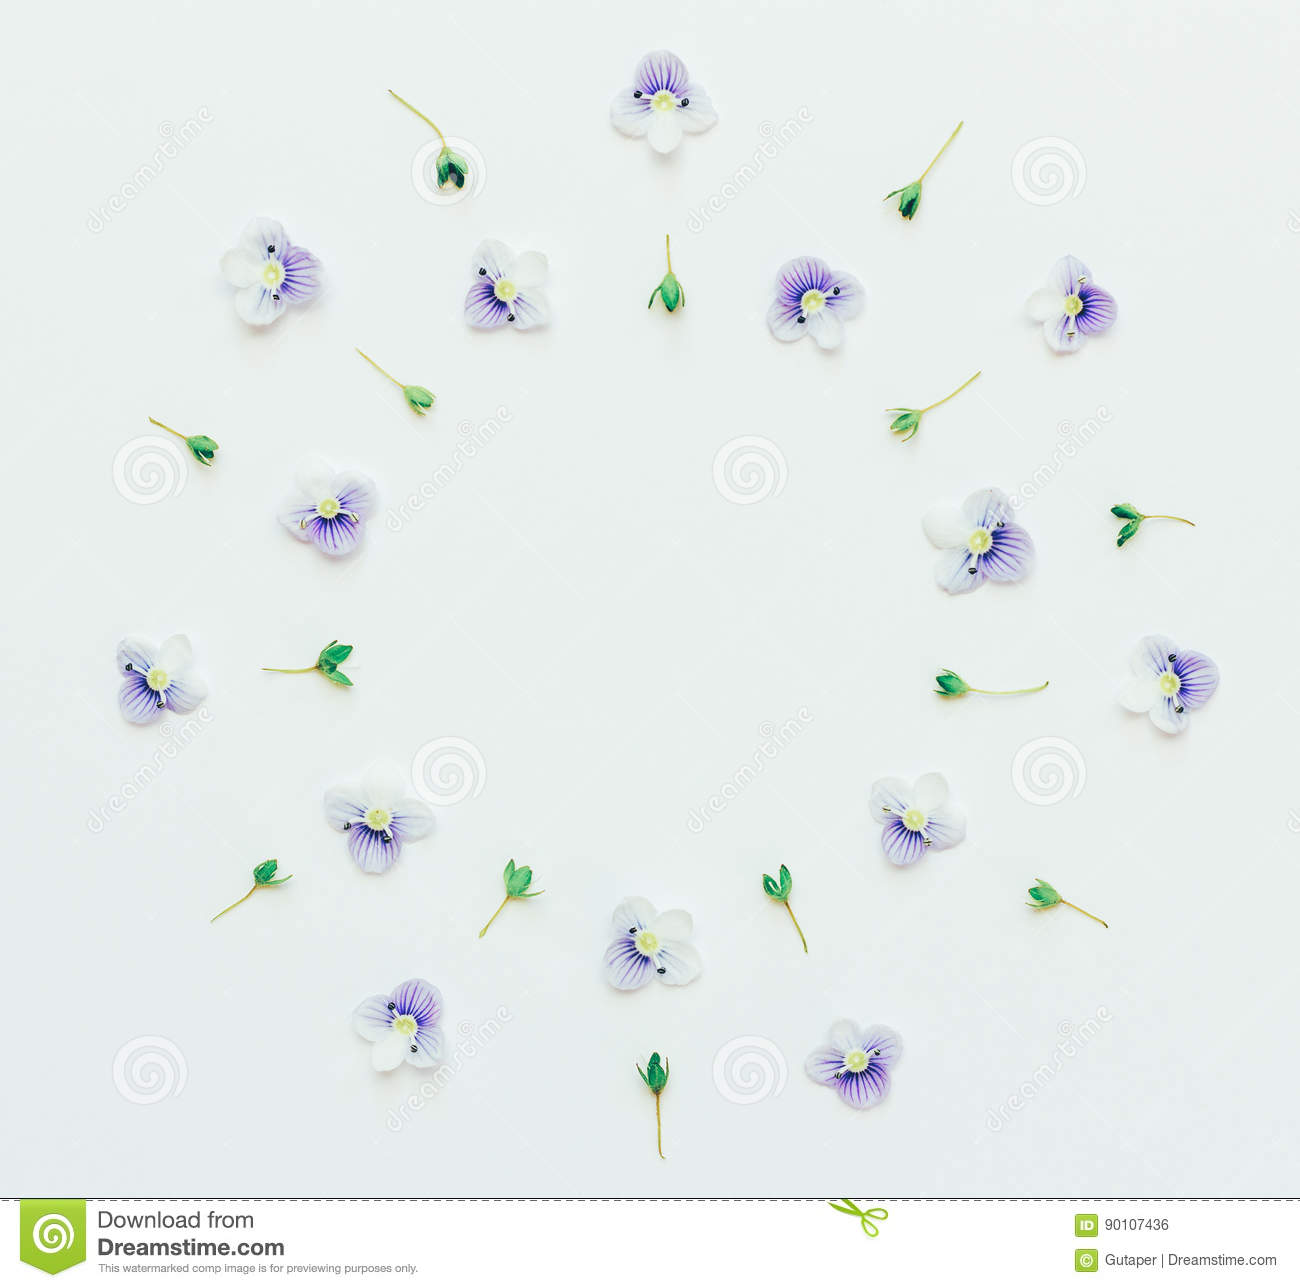 Floral round frame of small blue flowers on a white background with space for text